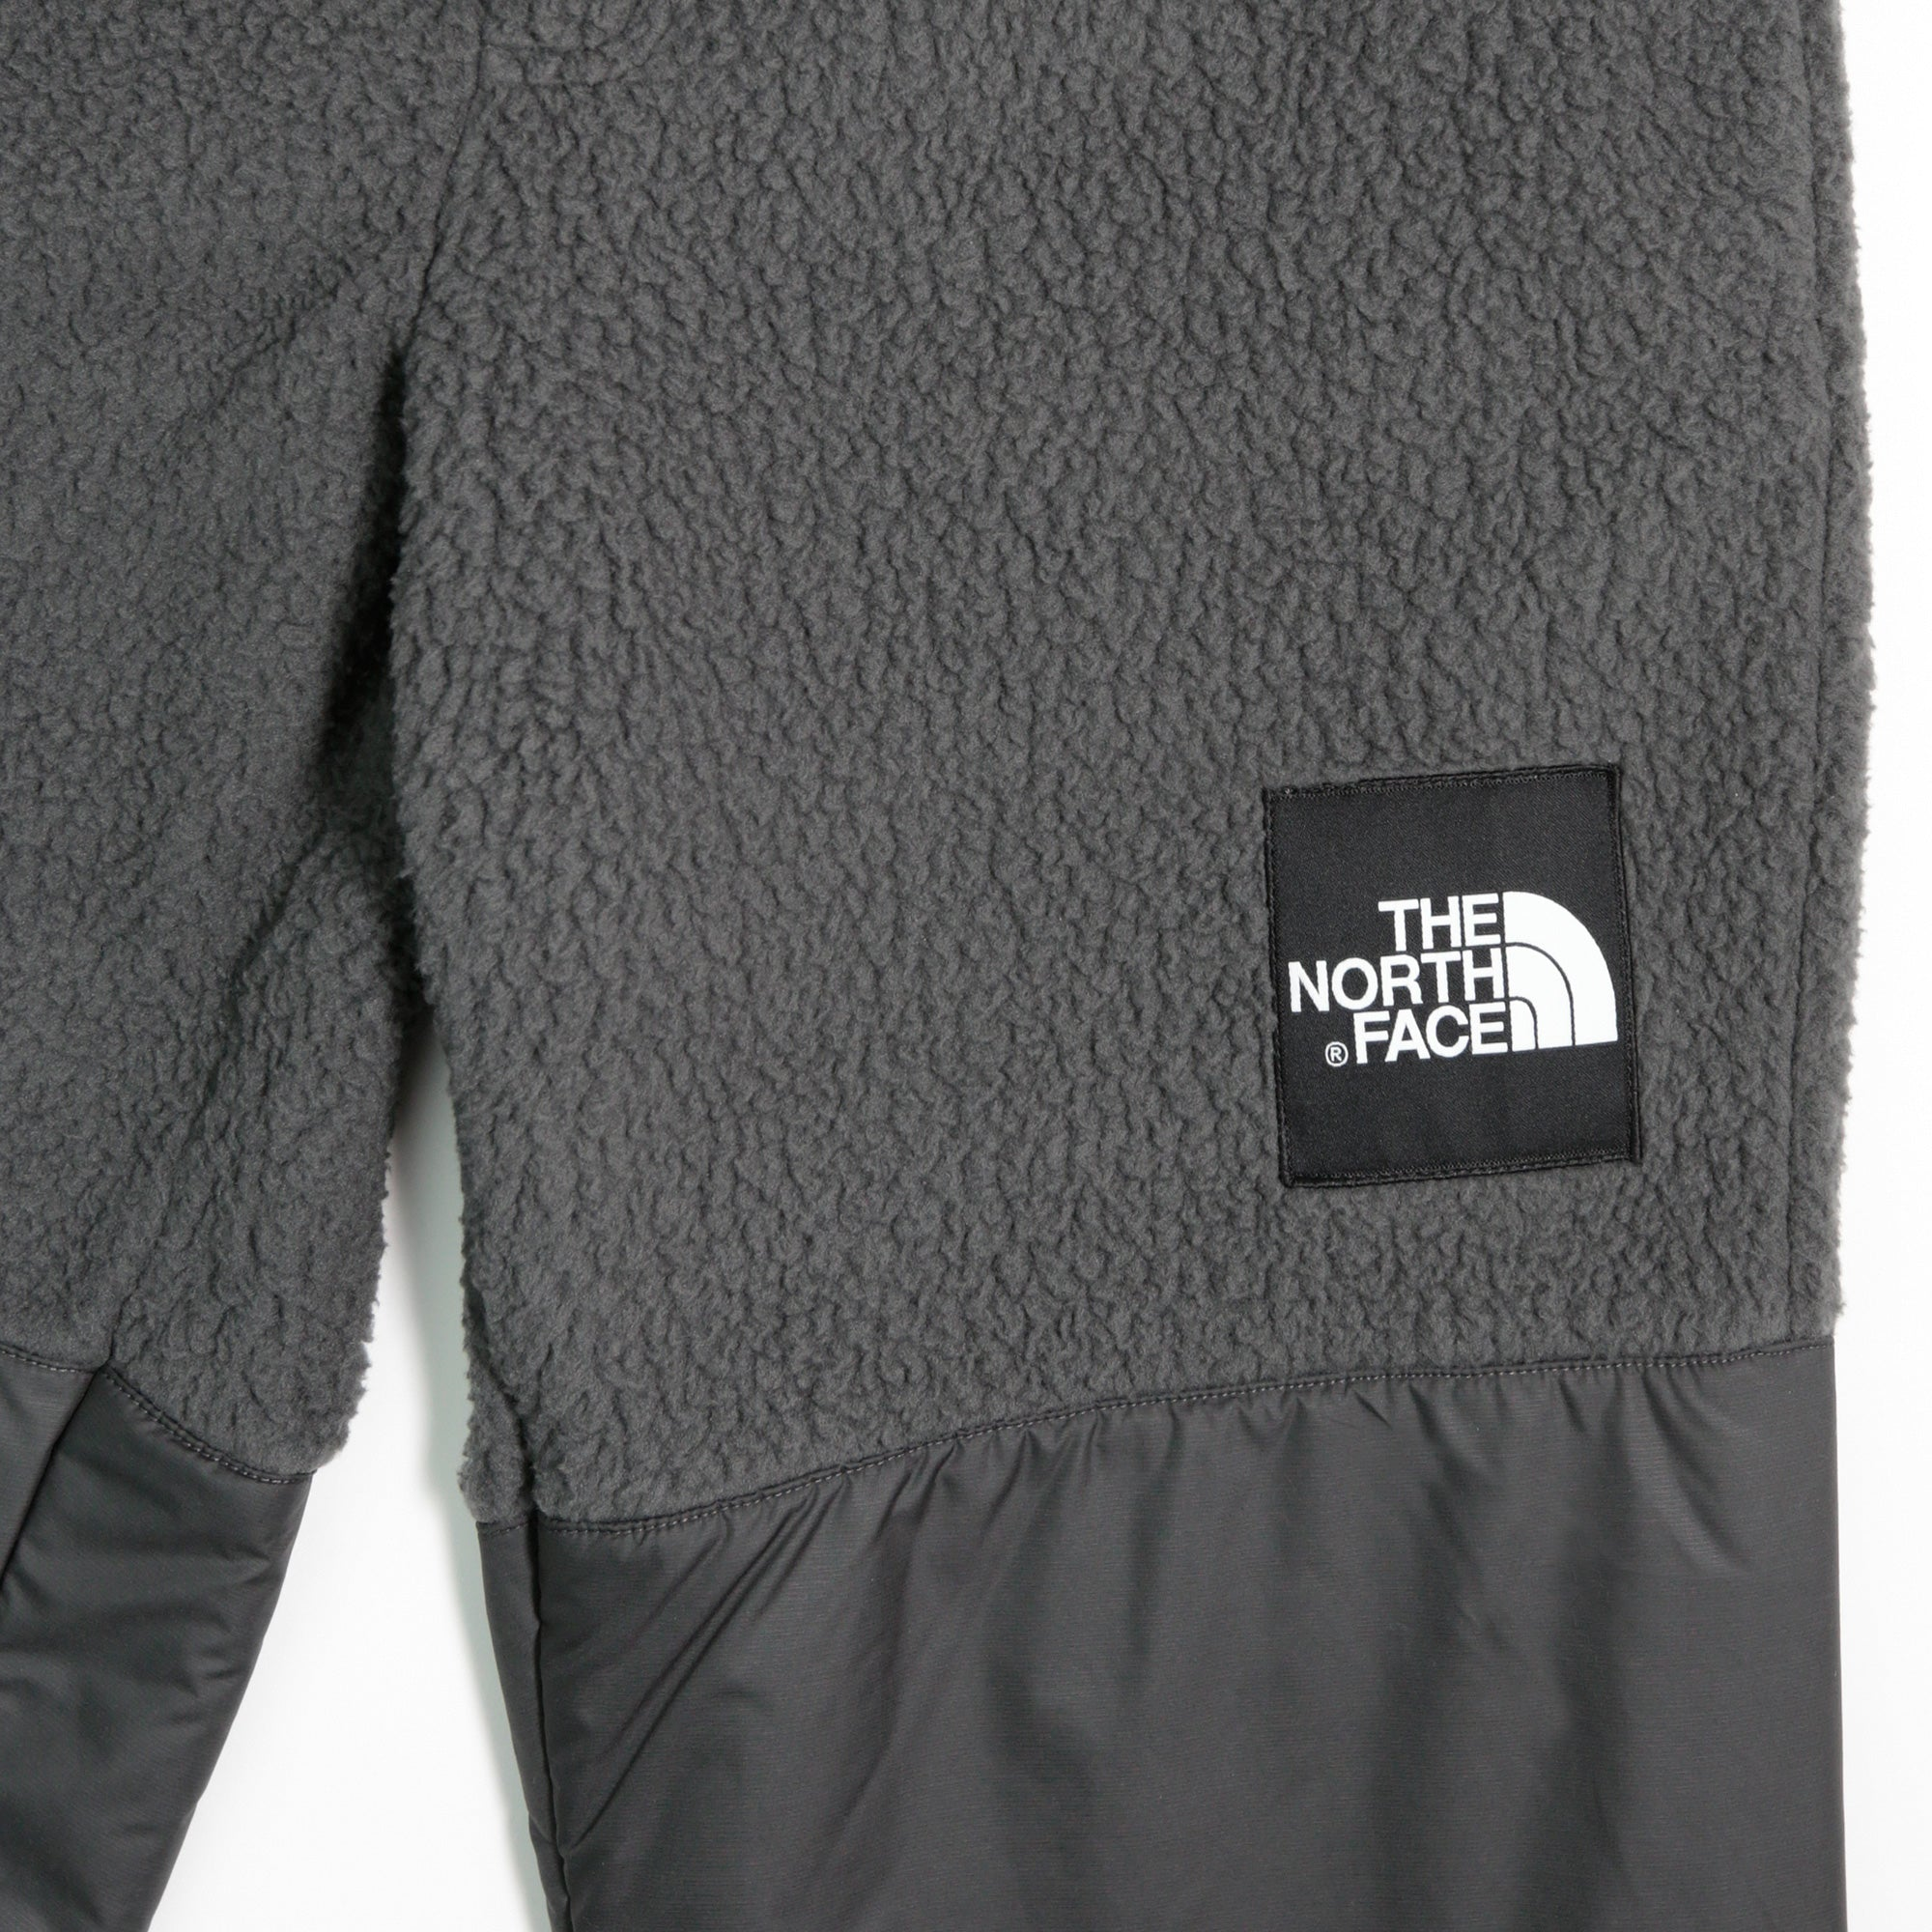 d1d8026f7bc7 ... new style the north face mens denali fleece pant nf0a3l2j0c5 3c731 4ccfb